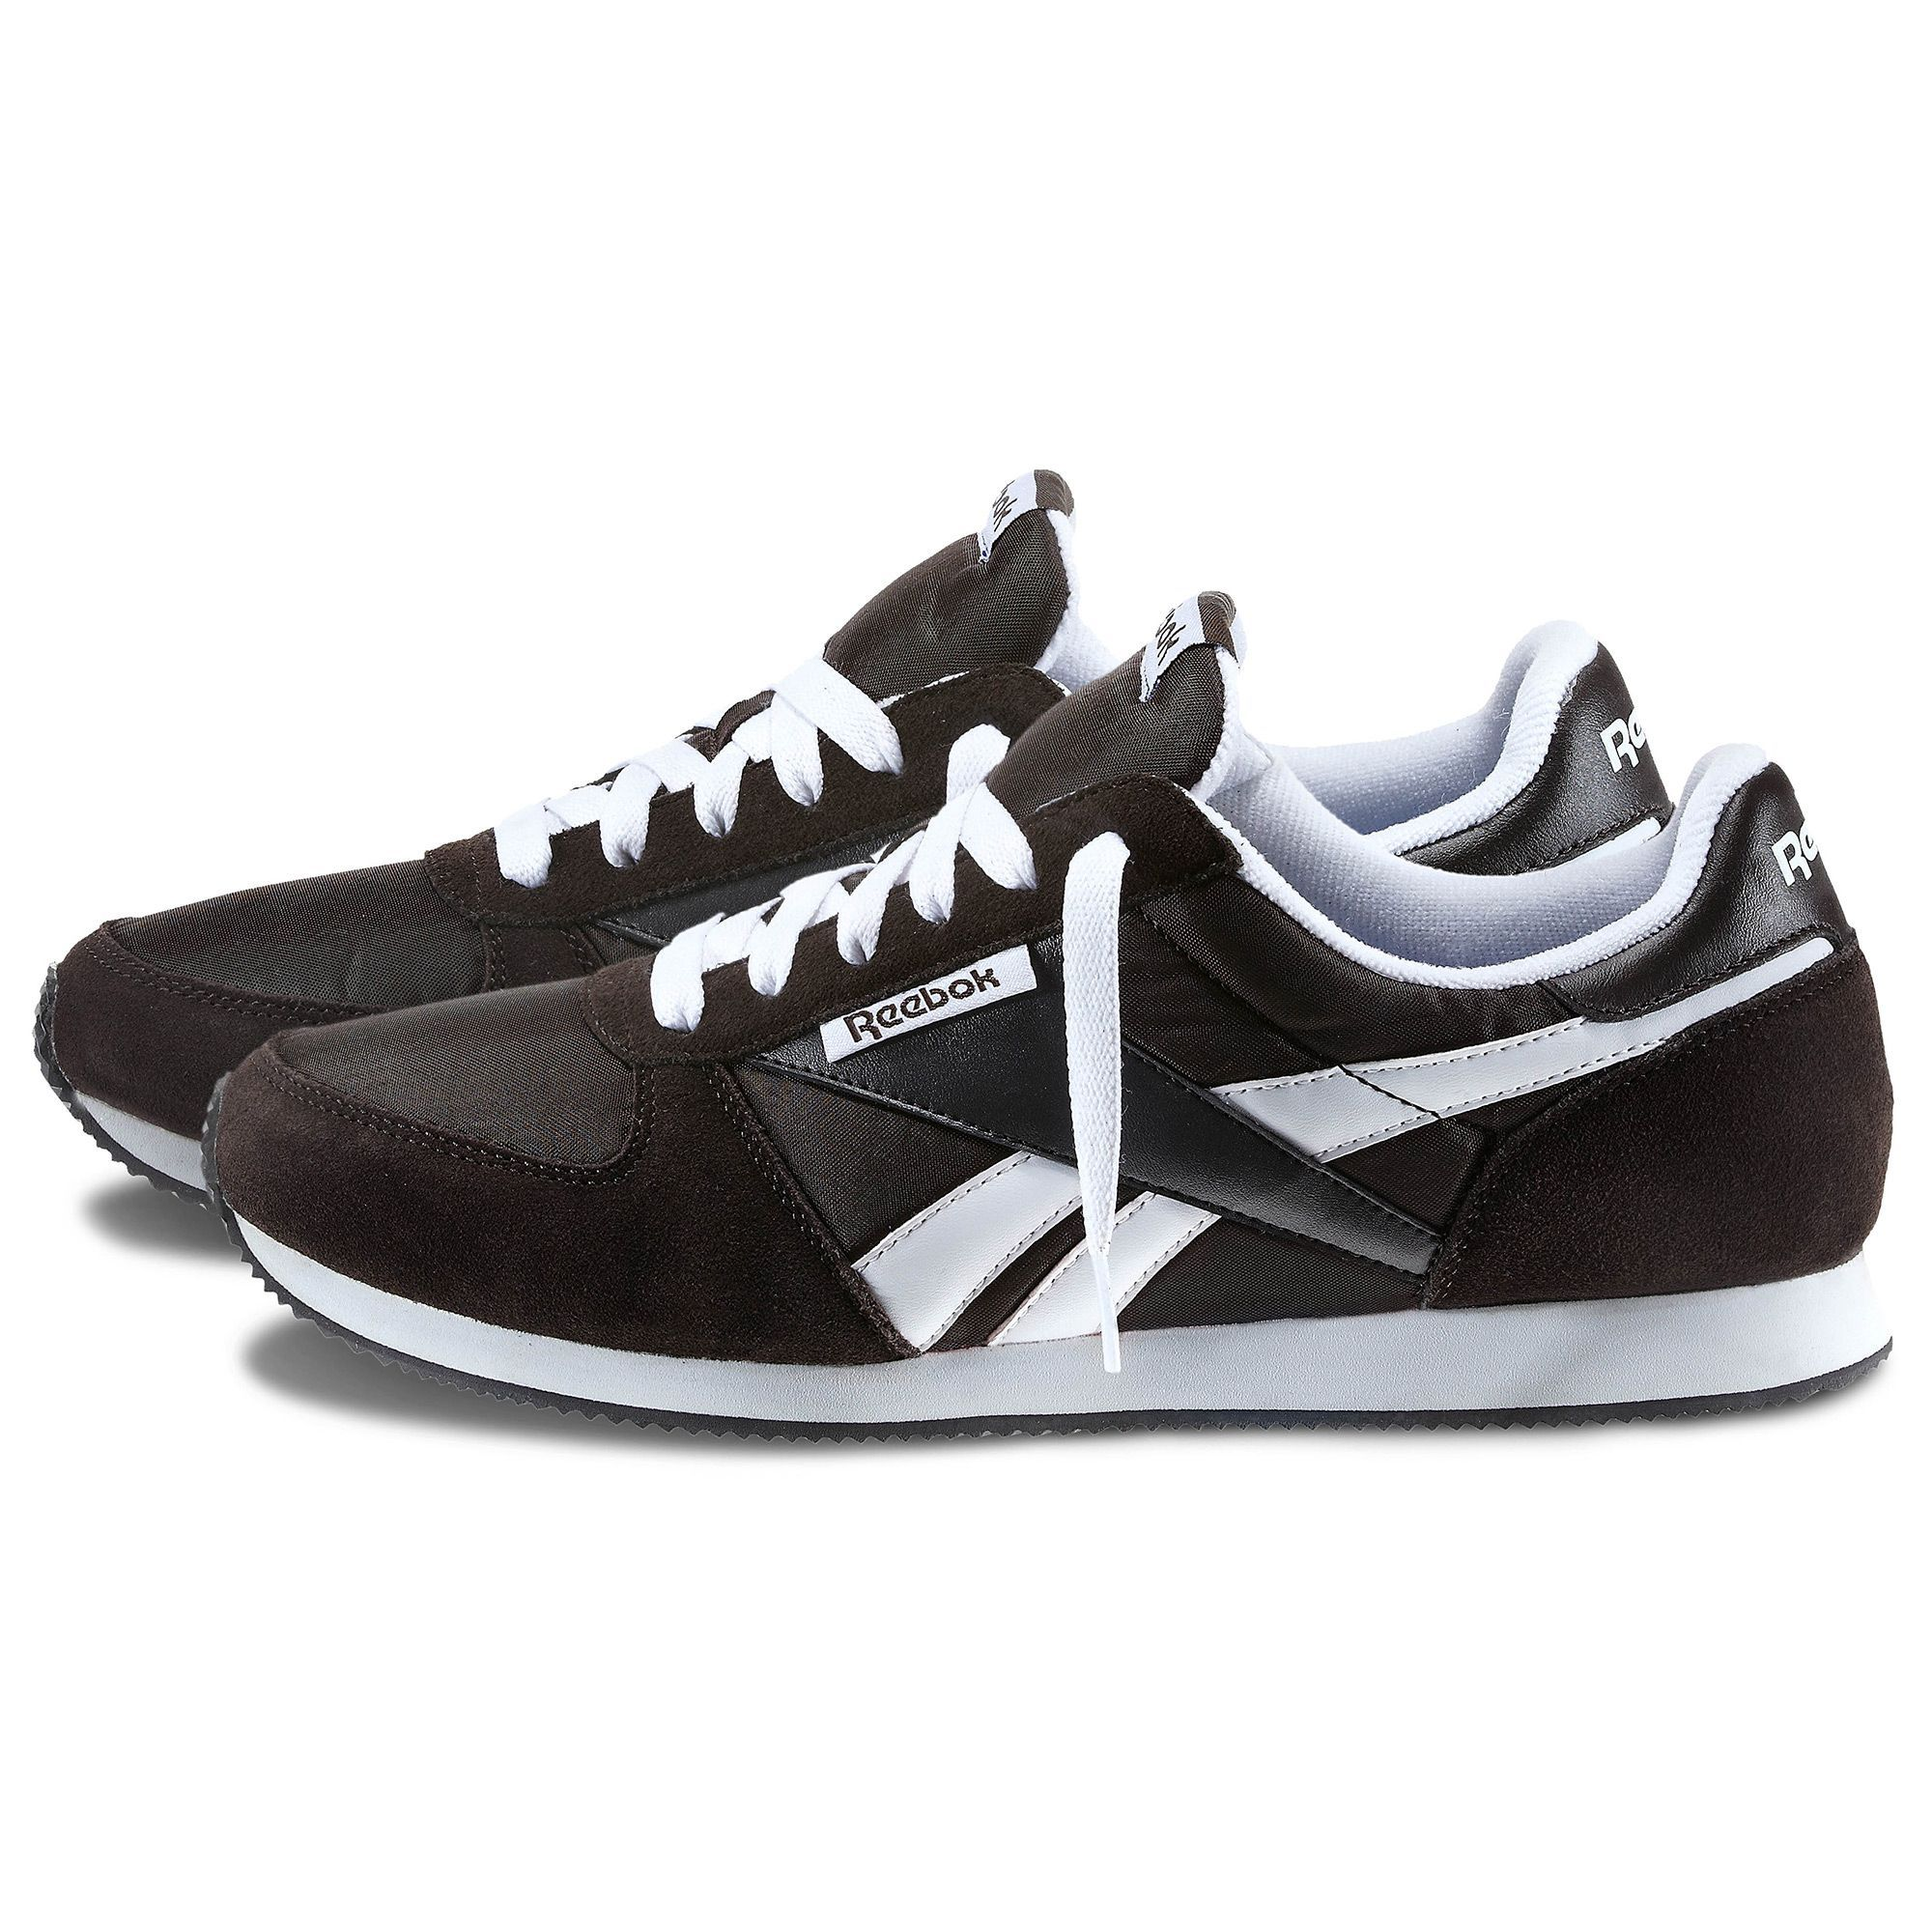 98bc4276 Reebok Classic Jogger | Reebok International | My Next Shoe in 2019 ...